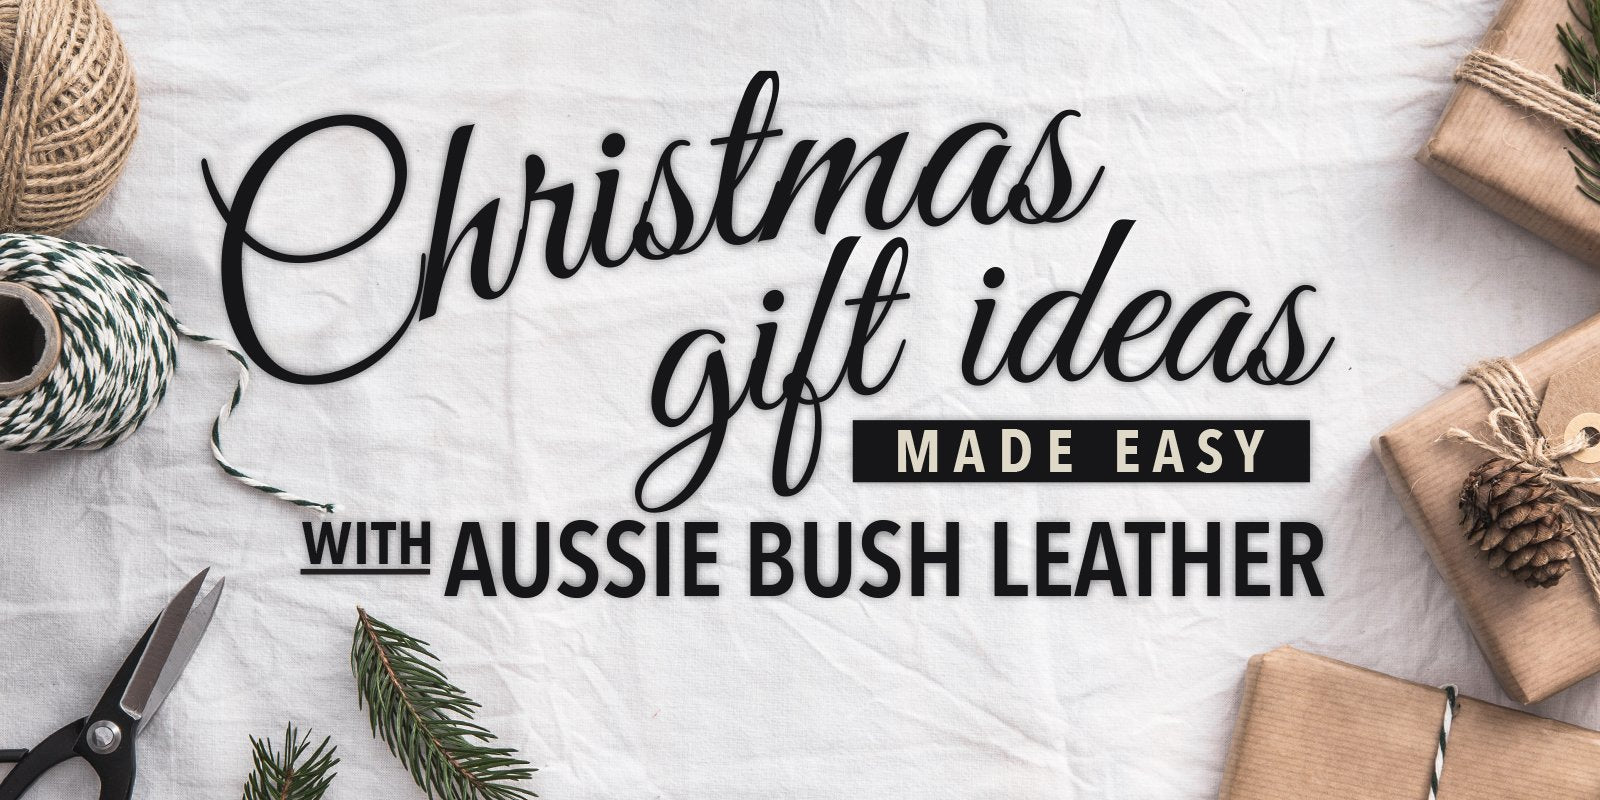 Travel the world with Aussie Bush Leather